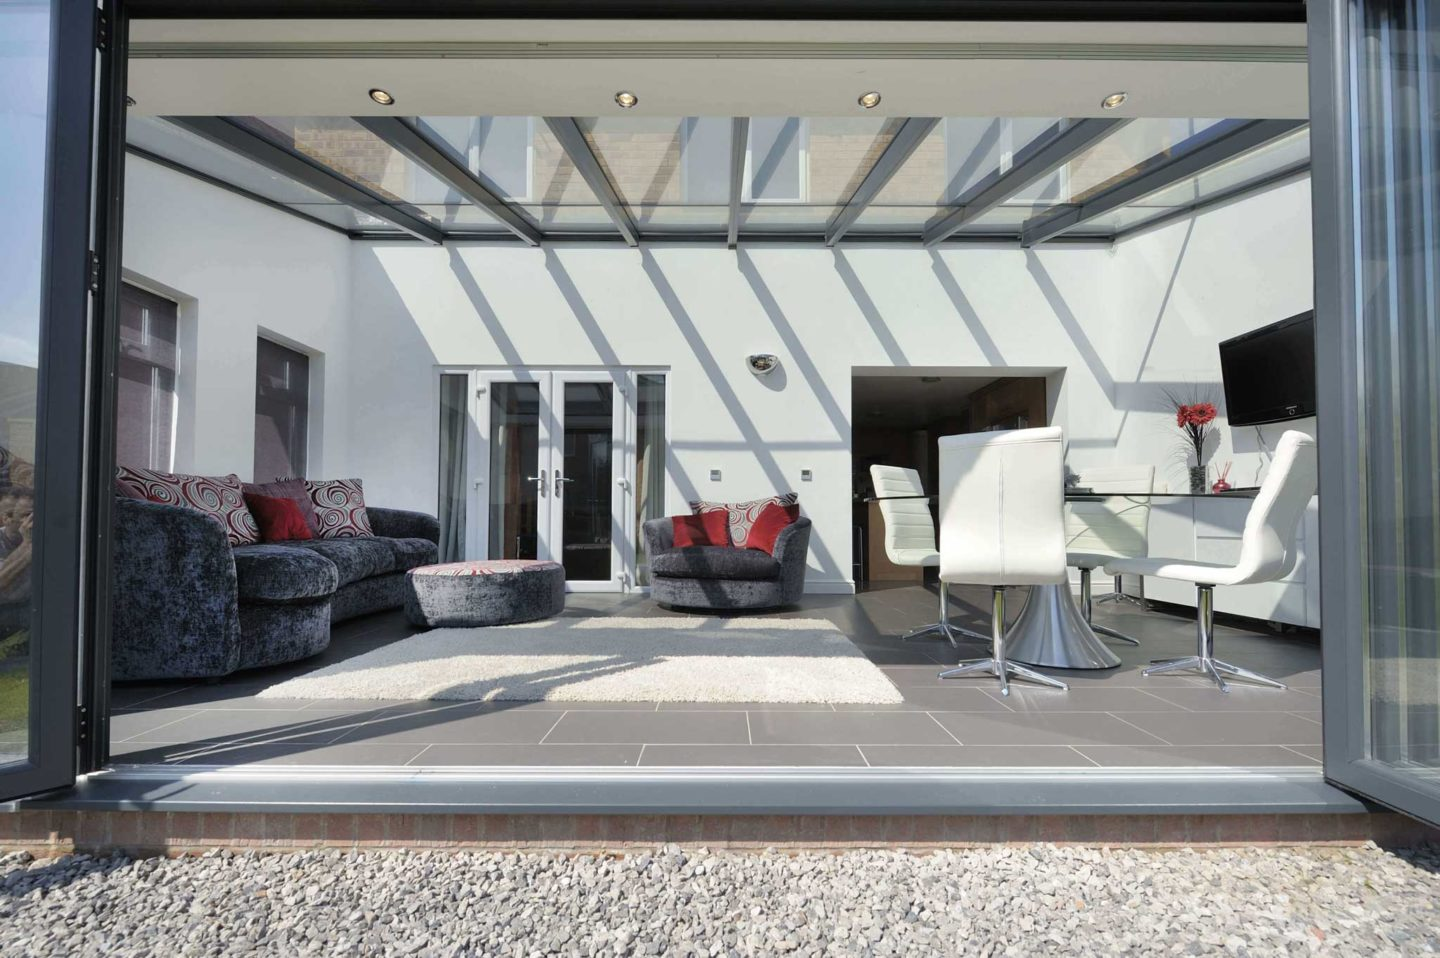 Double Glazing Costs in Accrington